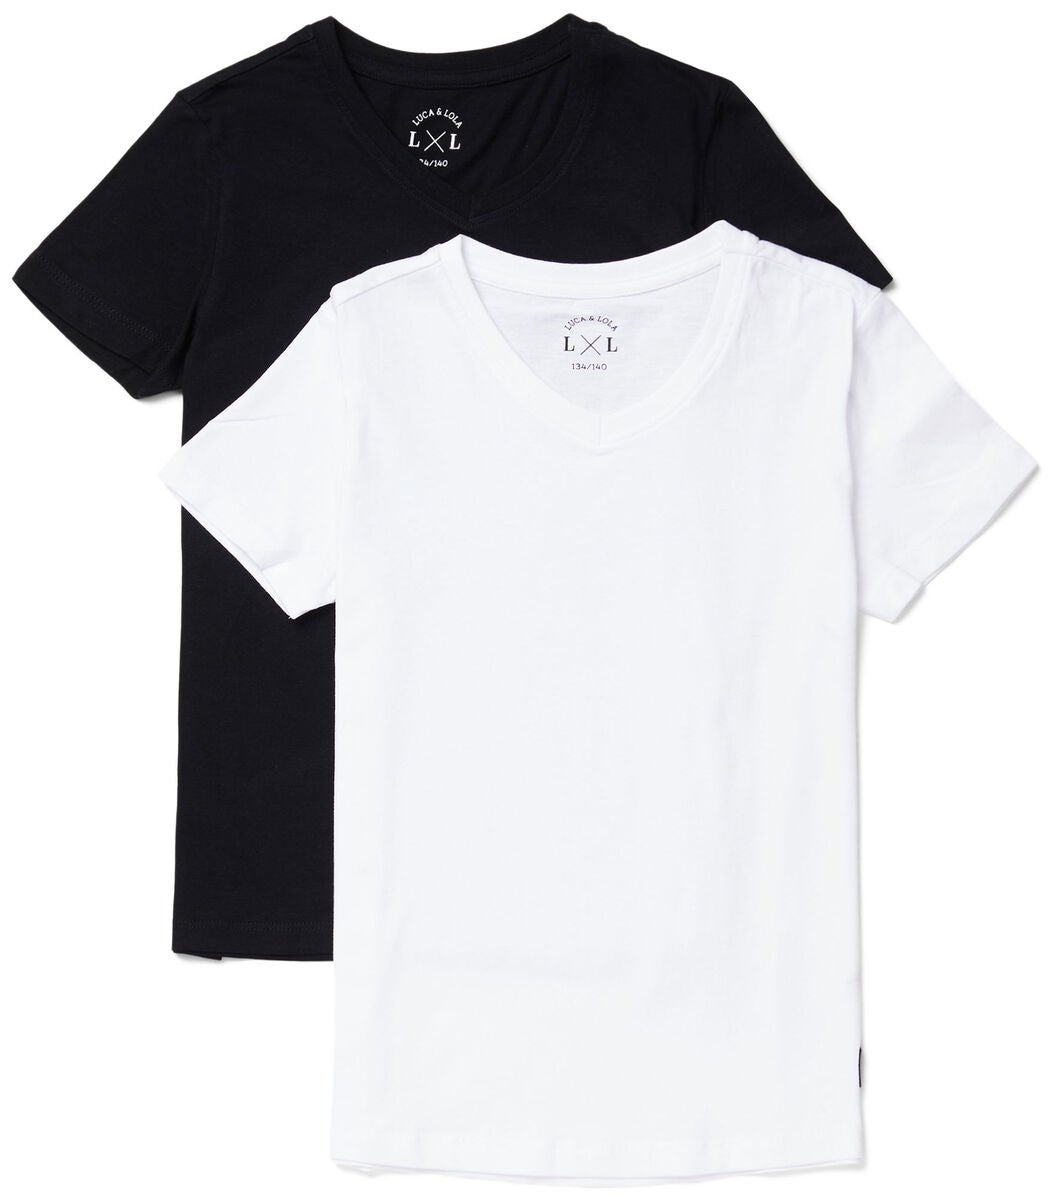 Luca & Lola Desiderio T-Shirt 2-pack, Black/White